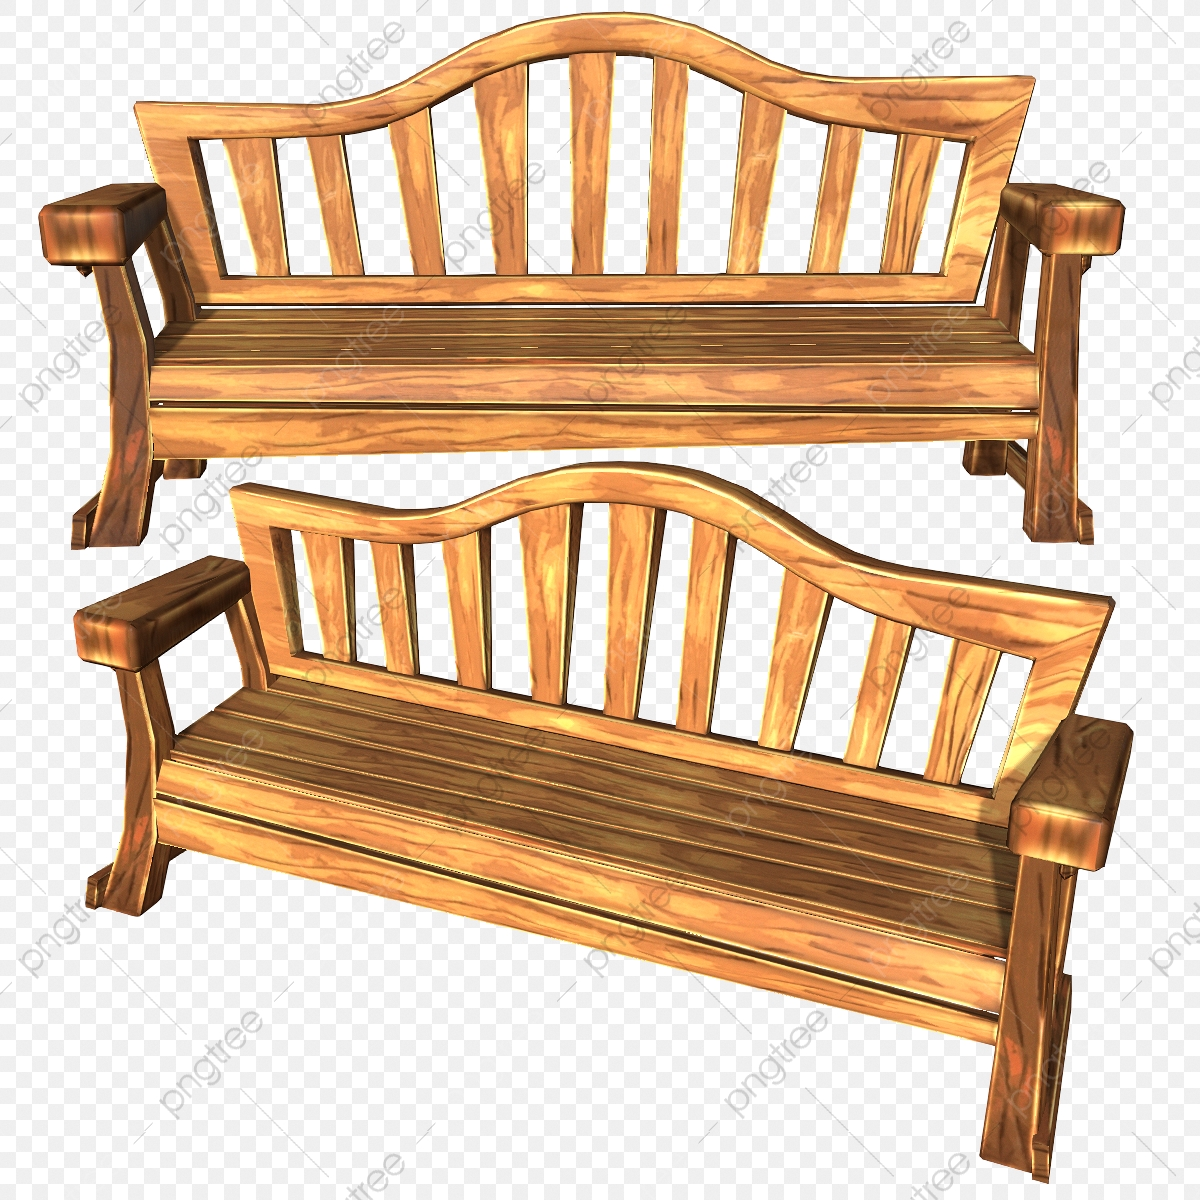 Fabulous Park Bench Wooden Park Wooden Chair Png Transparent Creativecarmelina Interior Chair Design Creativecarmelinacom